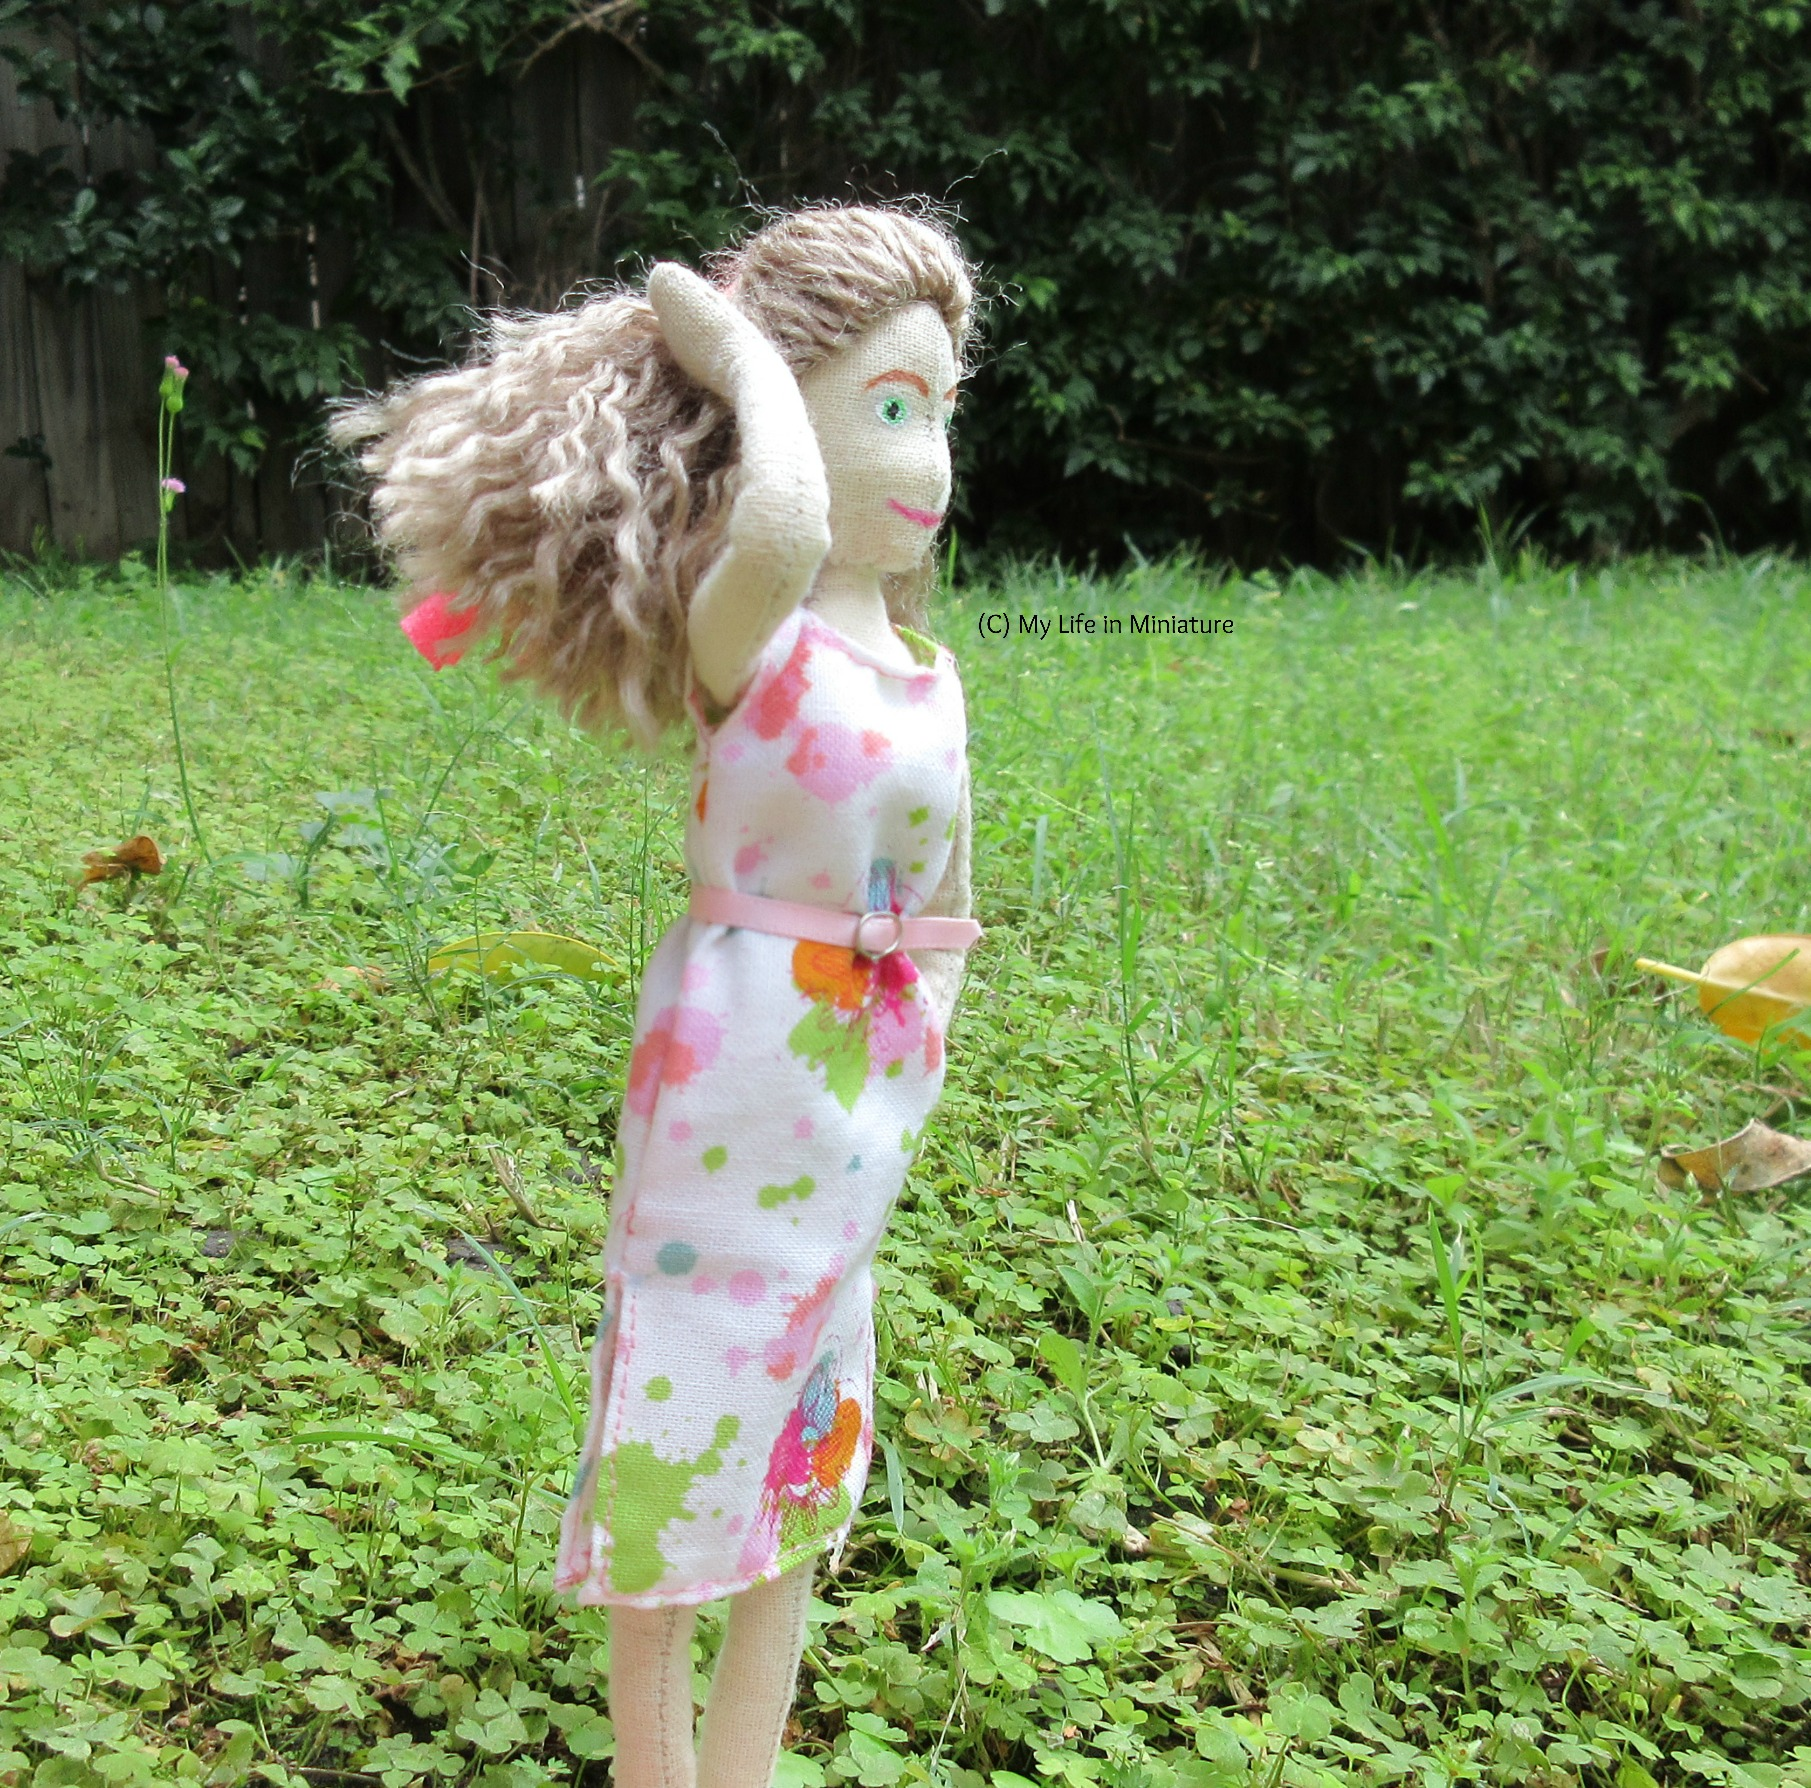 Lola stands on grass, with a hedge behind her. She has one hand on her hair and the other in her pocket, and she looks to the right.